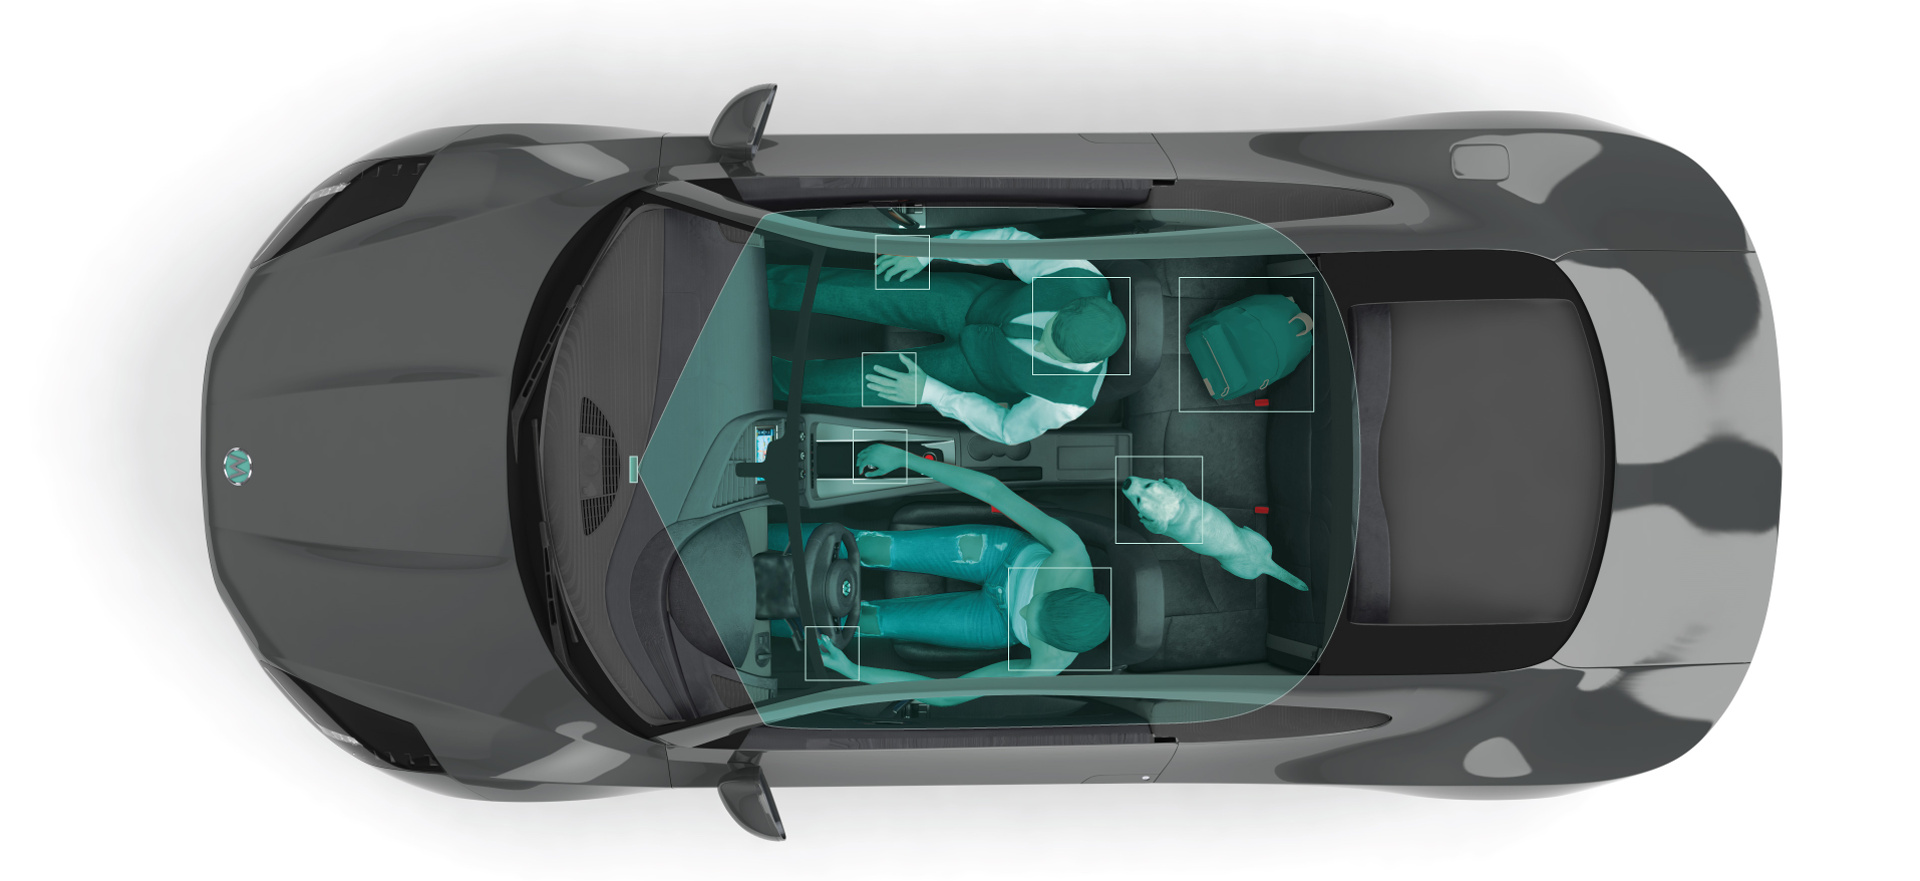 In-cabin monitoring automotive applications - Melexis